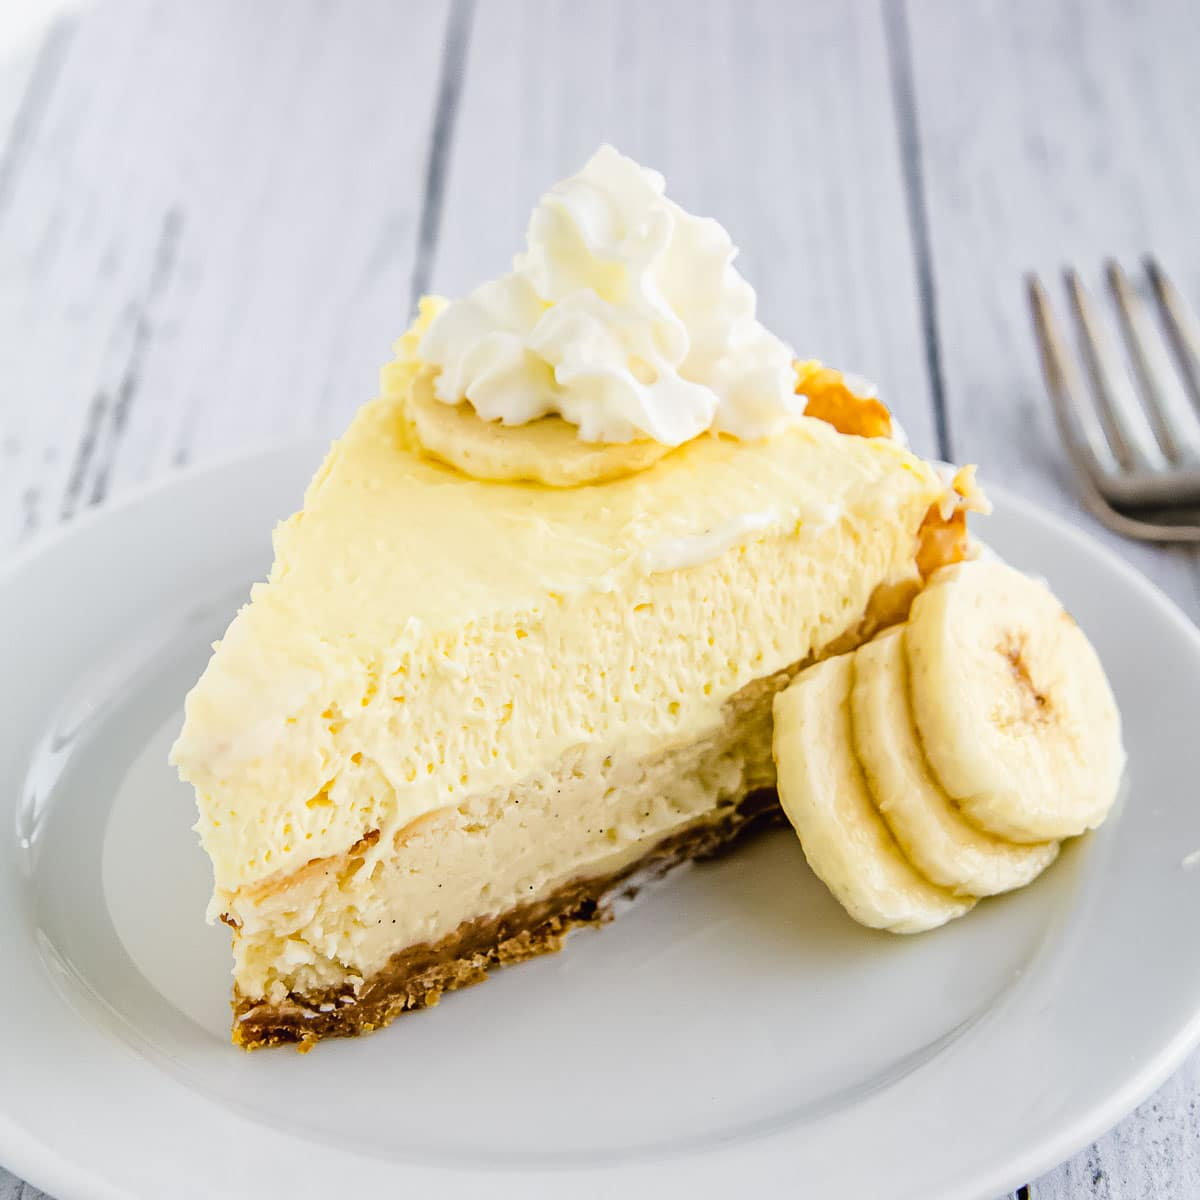 A slice of banana cream cheesecake on a plate.